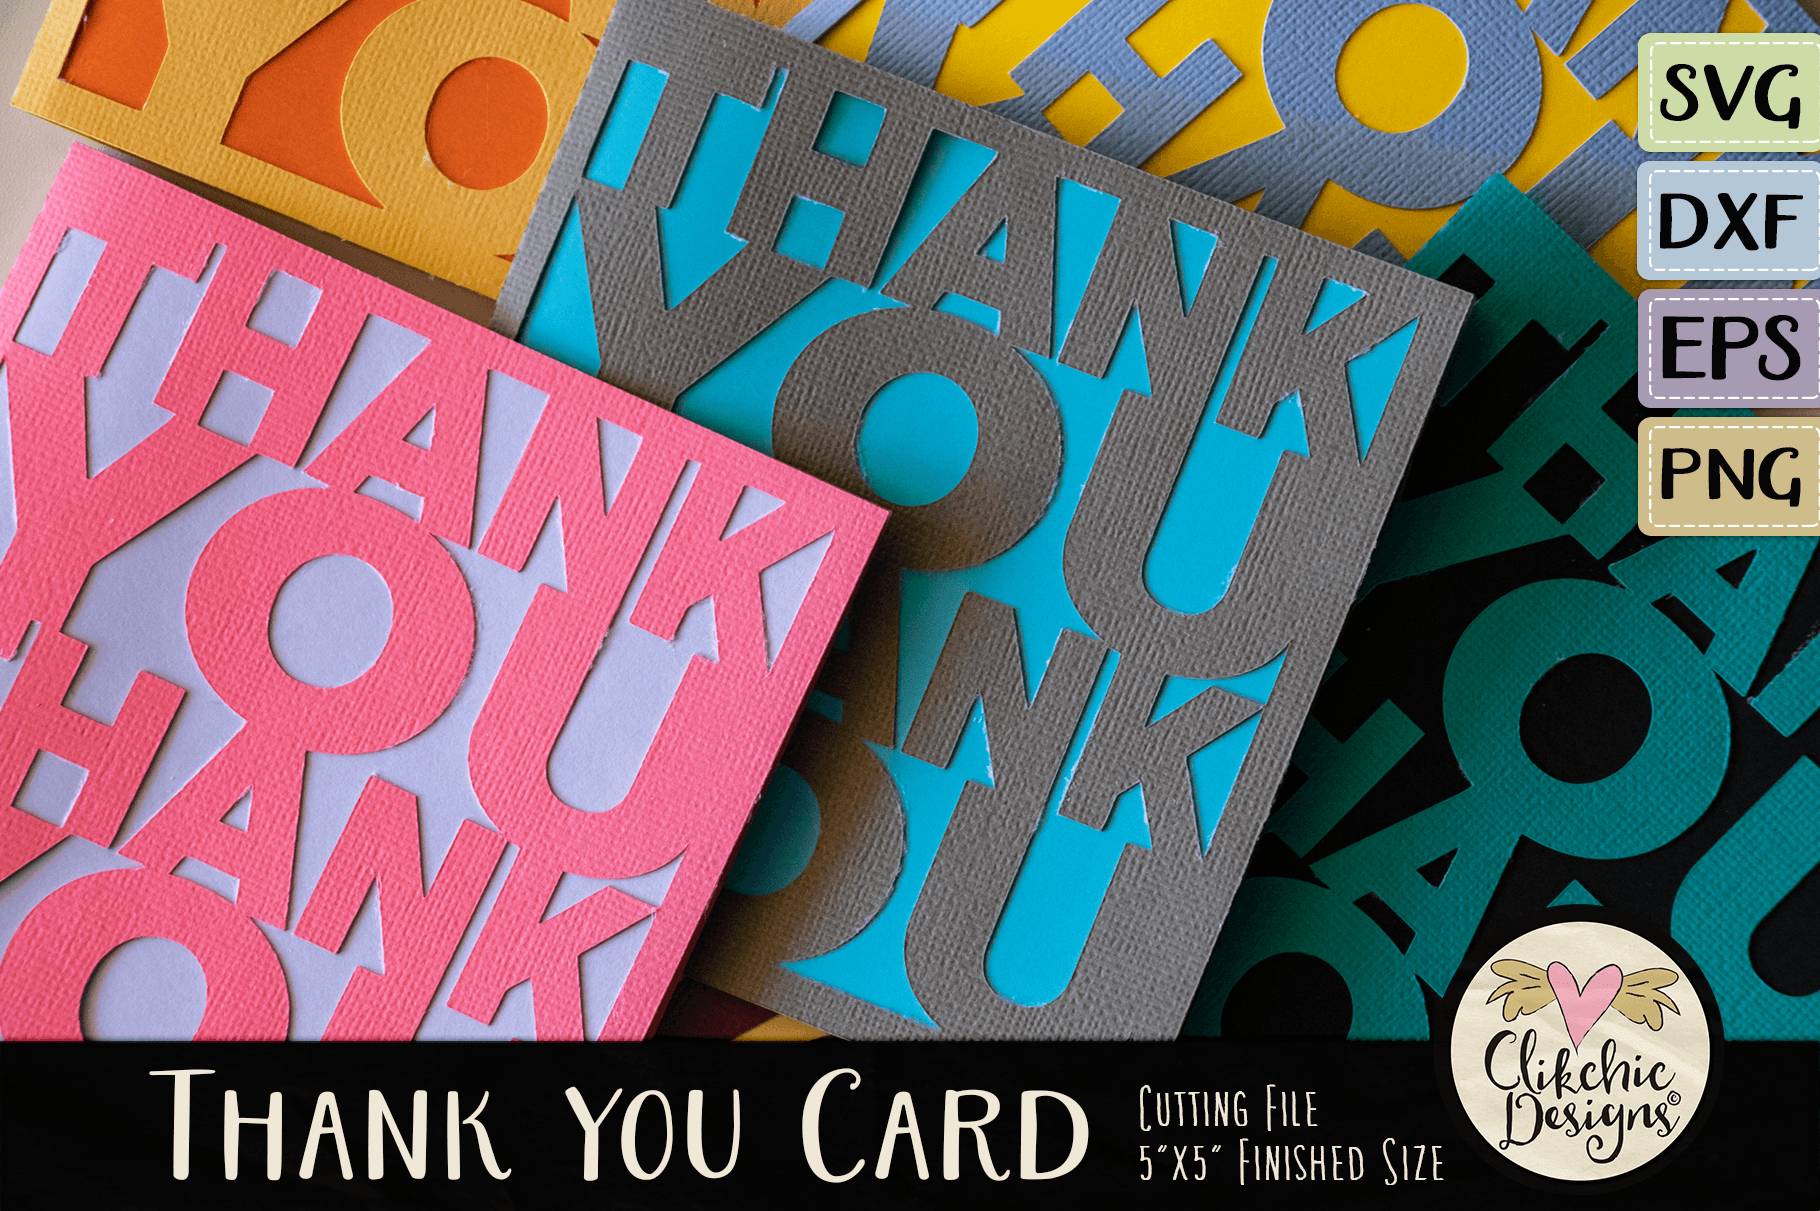 Thank You Card Svg Cutting File Tutorial By Clikchic Designs